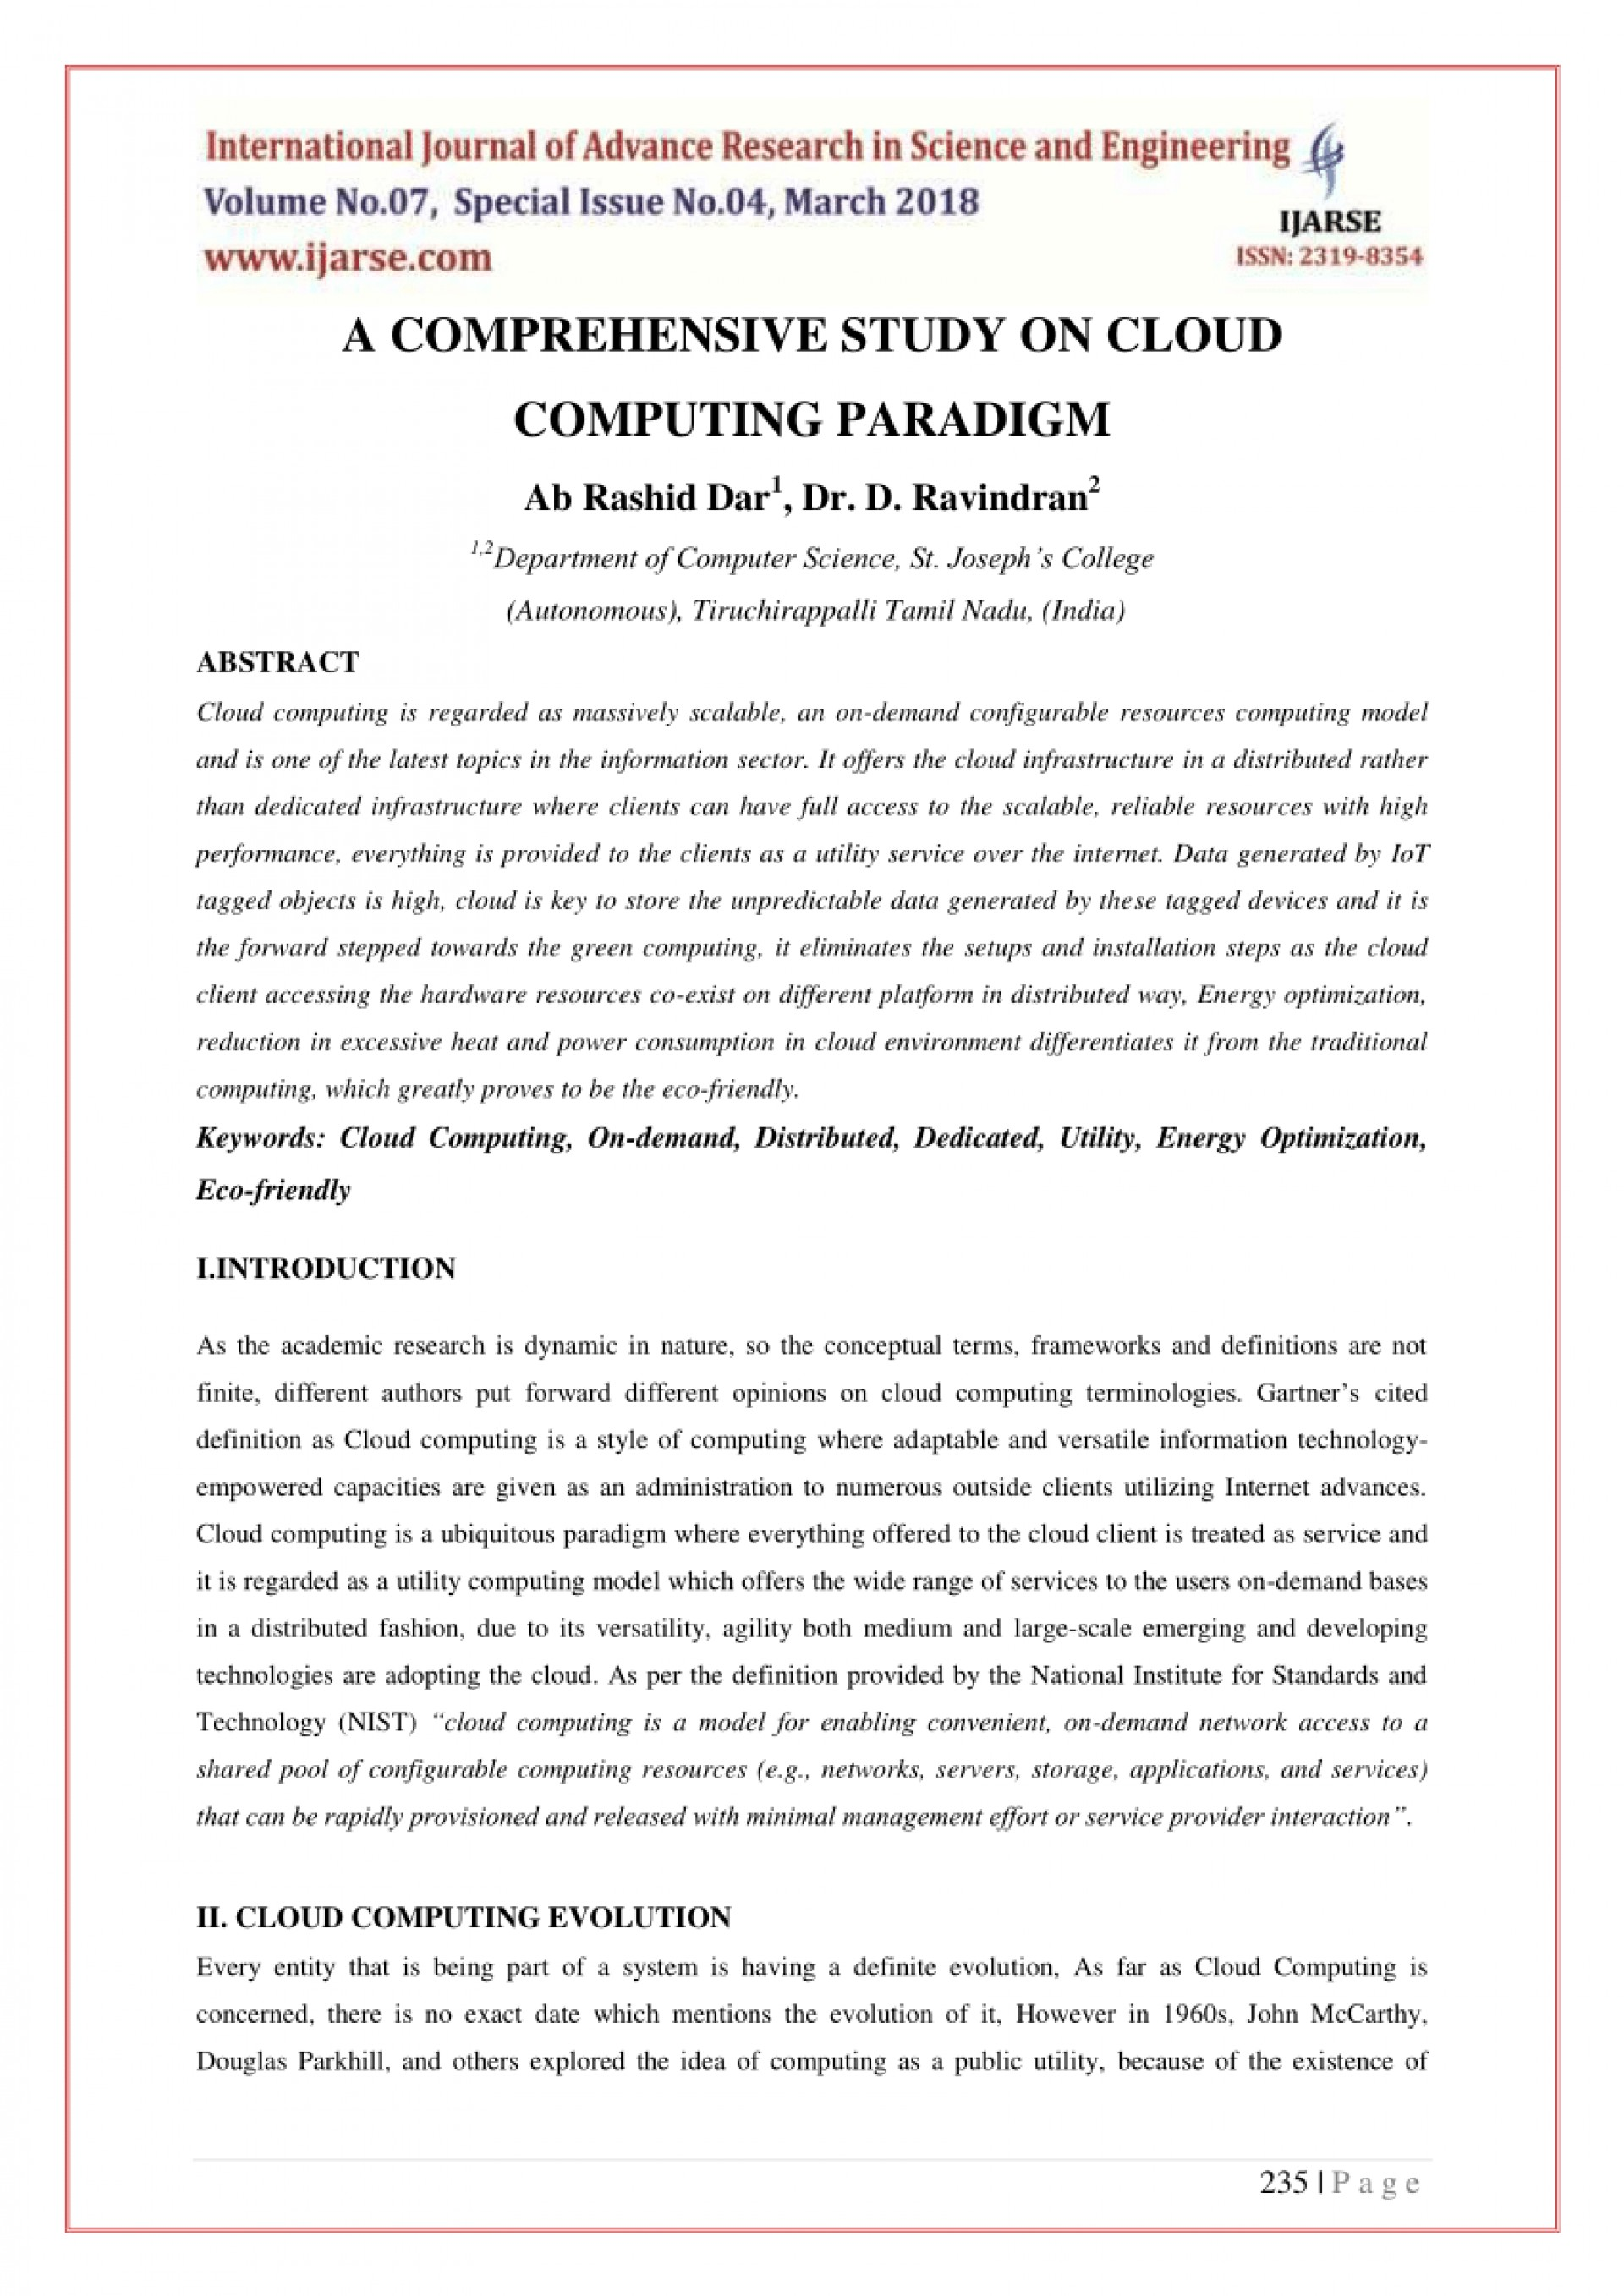 002 Largepreview Cloud Computing Research Paper Astounding 2018 Pdf 1920